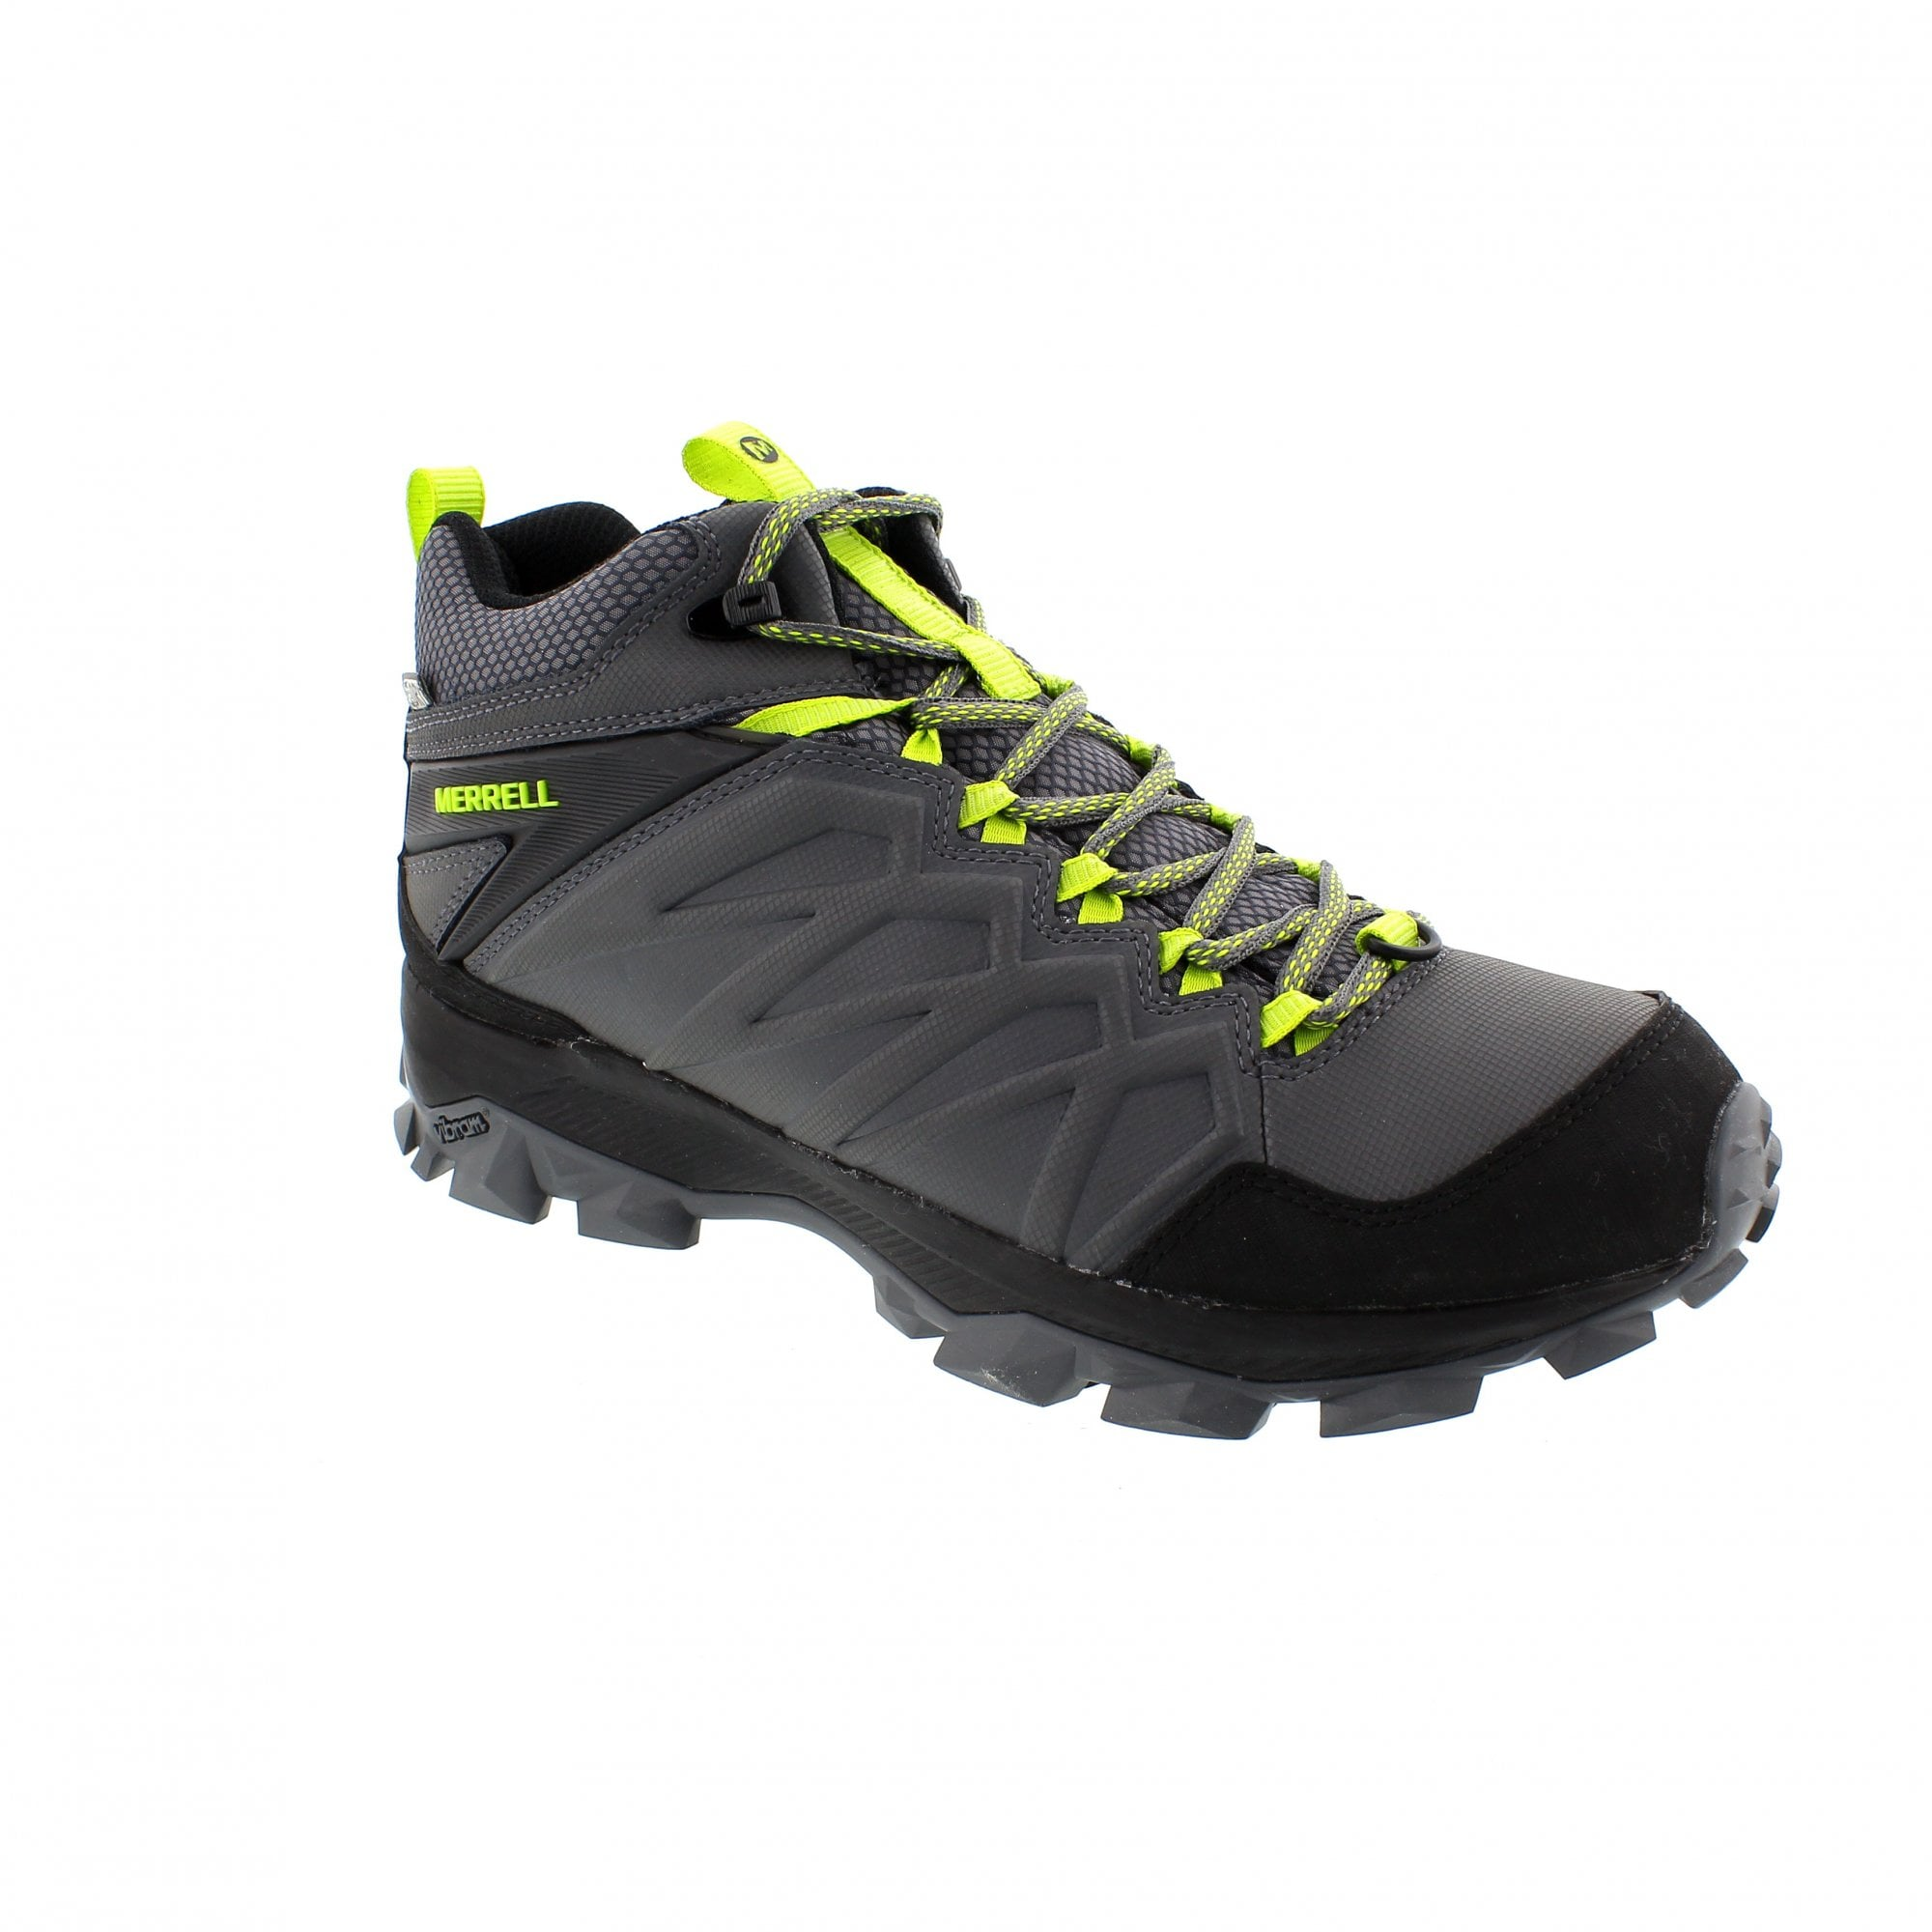 Merrell Thermo Freeze Mid Waterproof J42611 Mens Walking Boots ... 67c515dcb